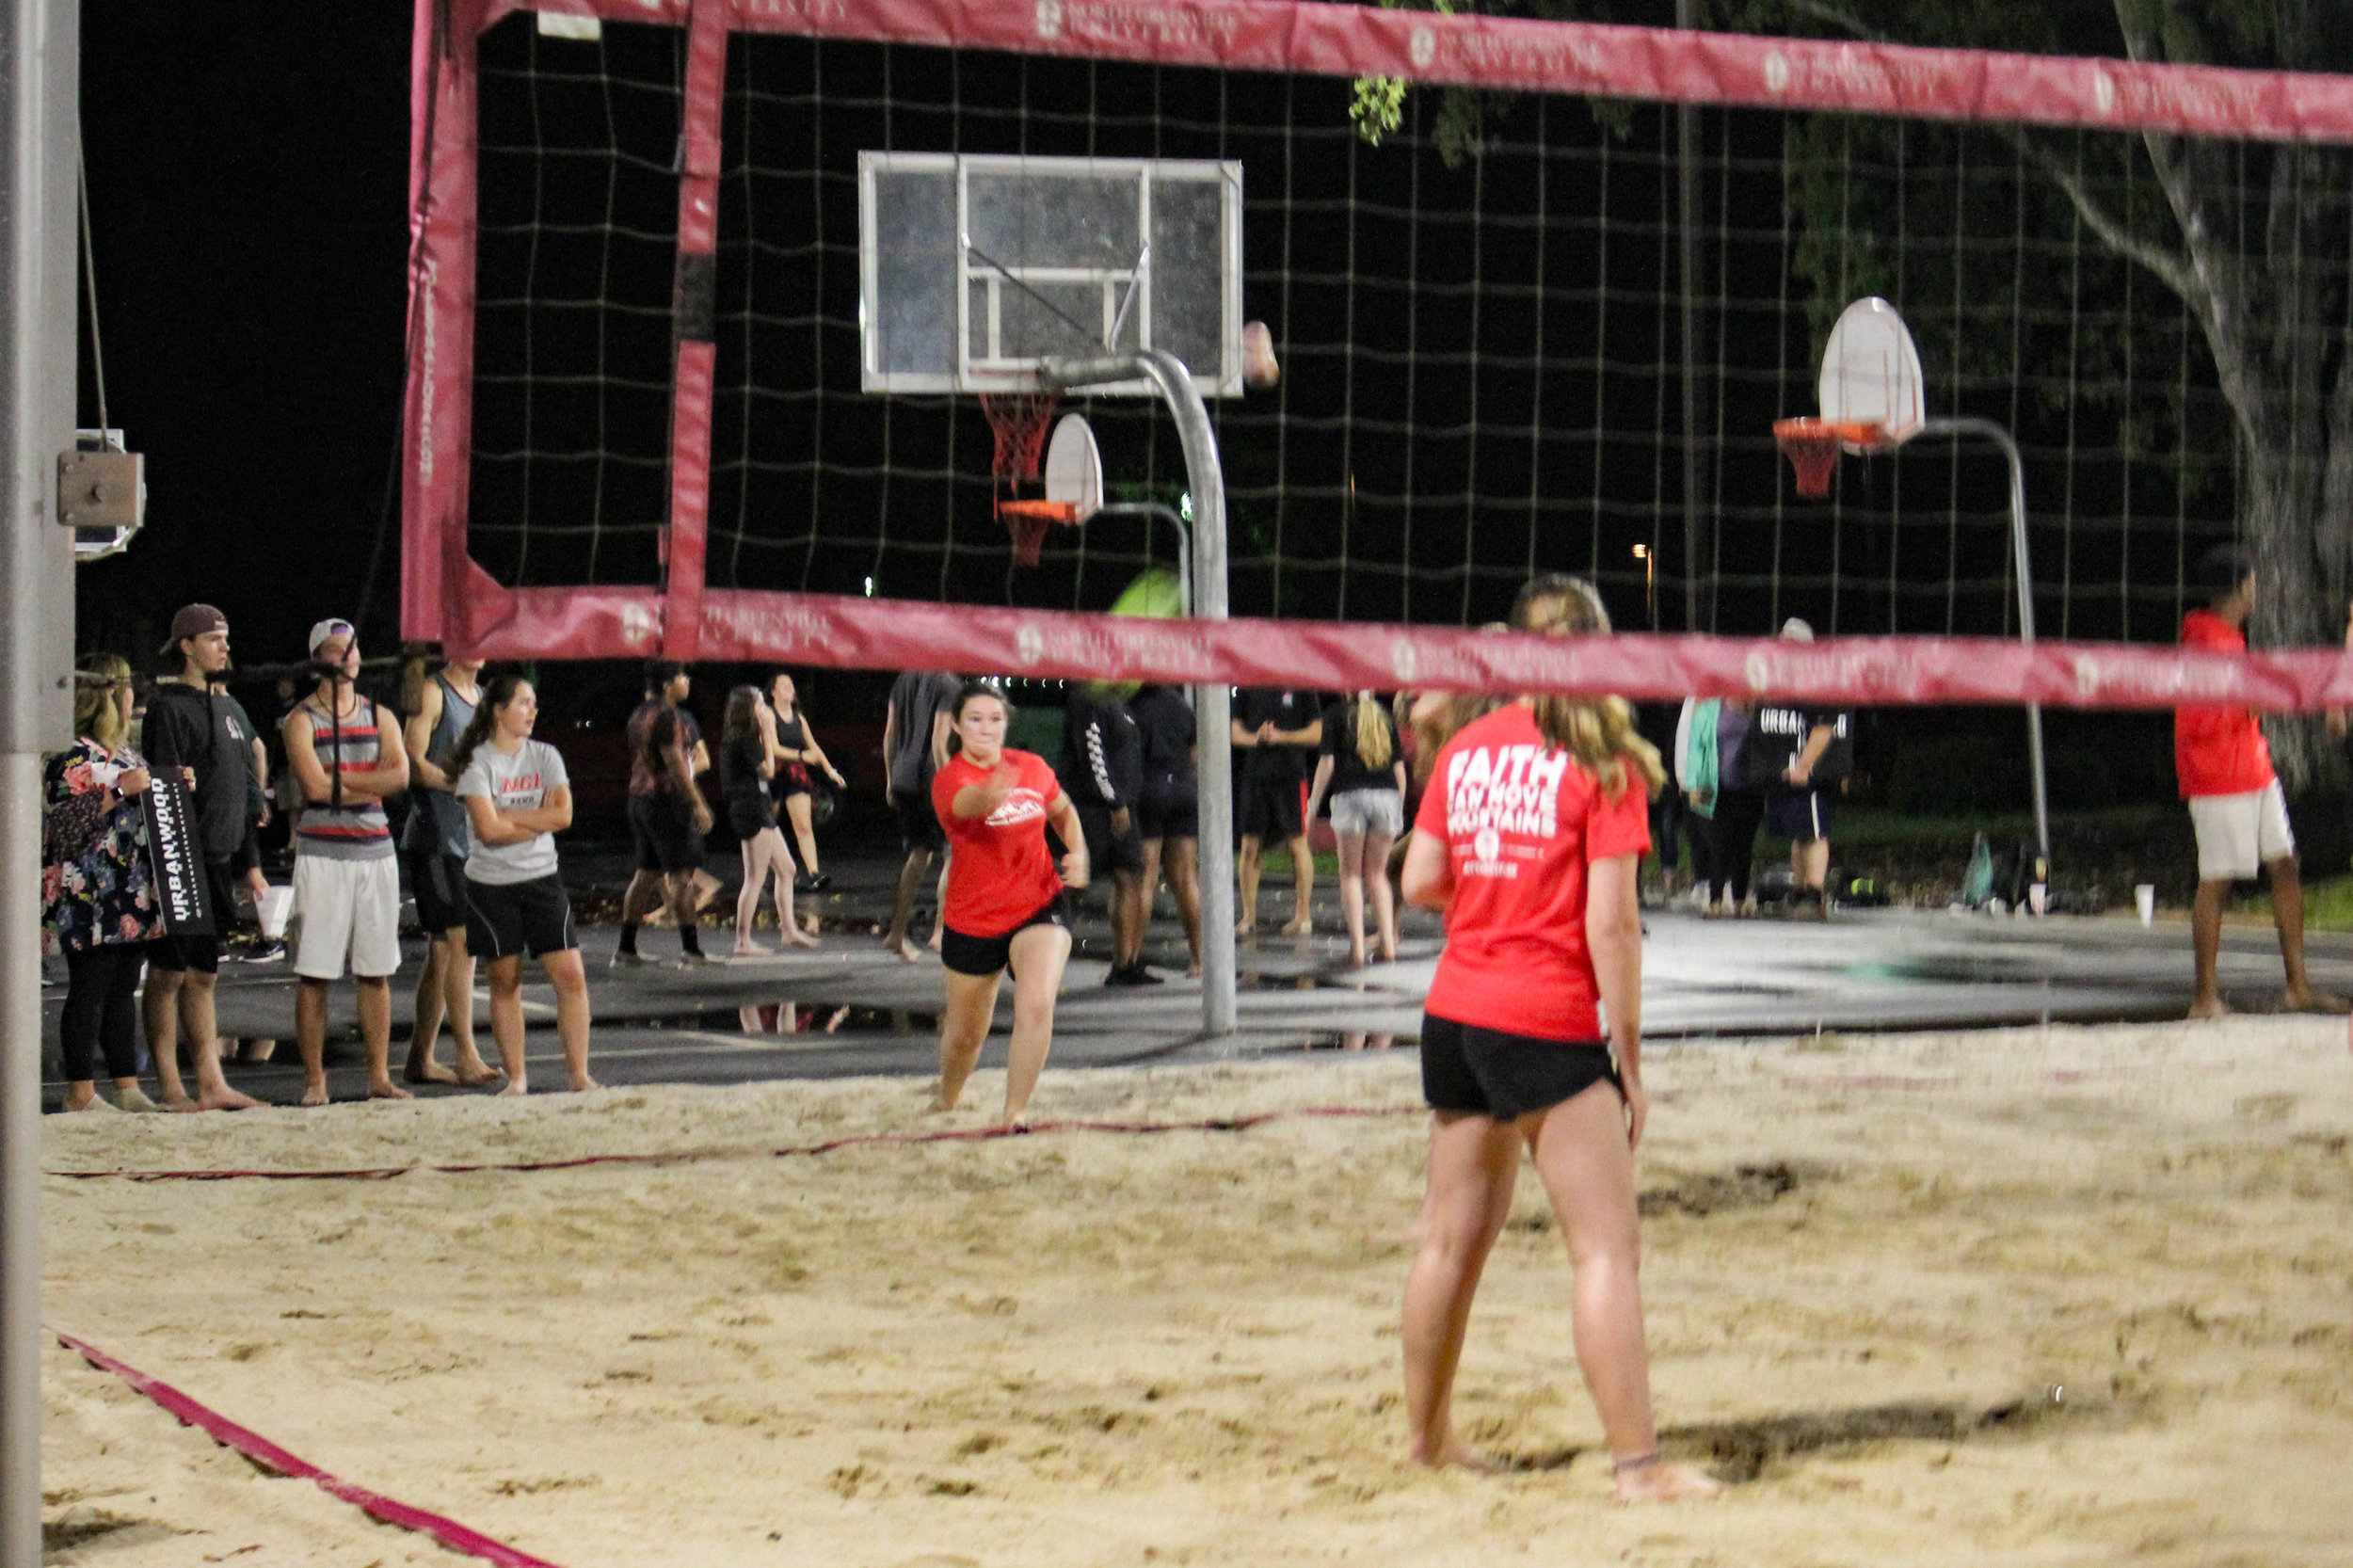 While playing against the animal science club, a member of the campus ambassadors serves the ball.